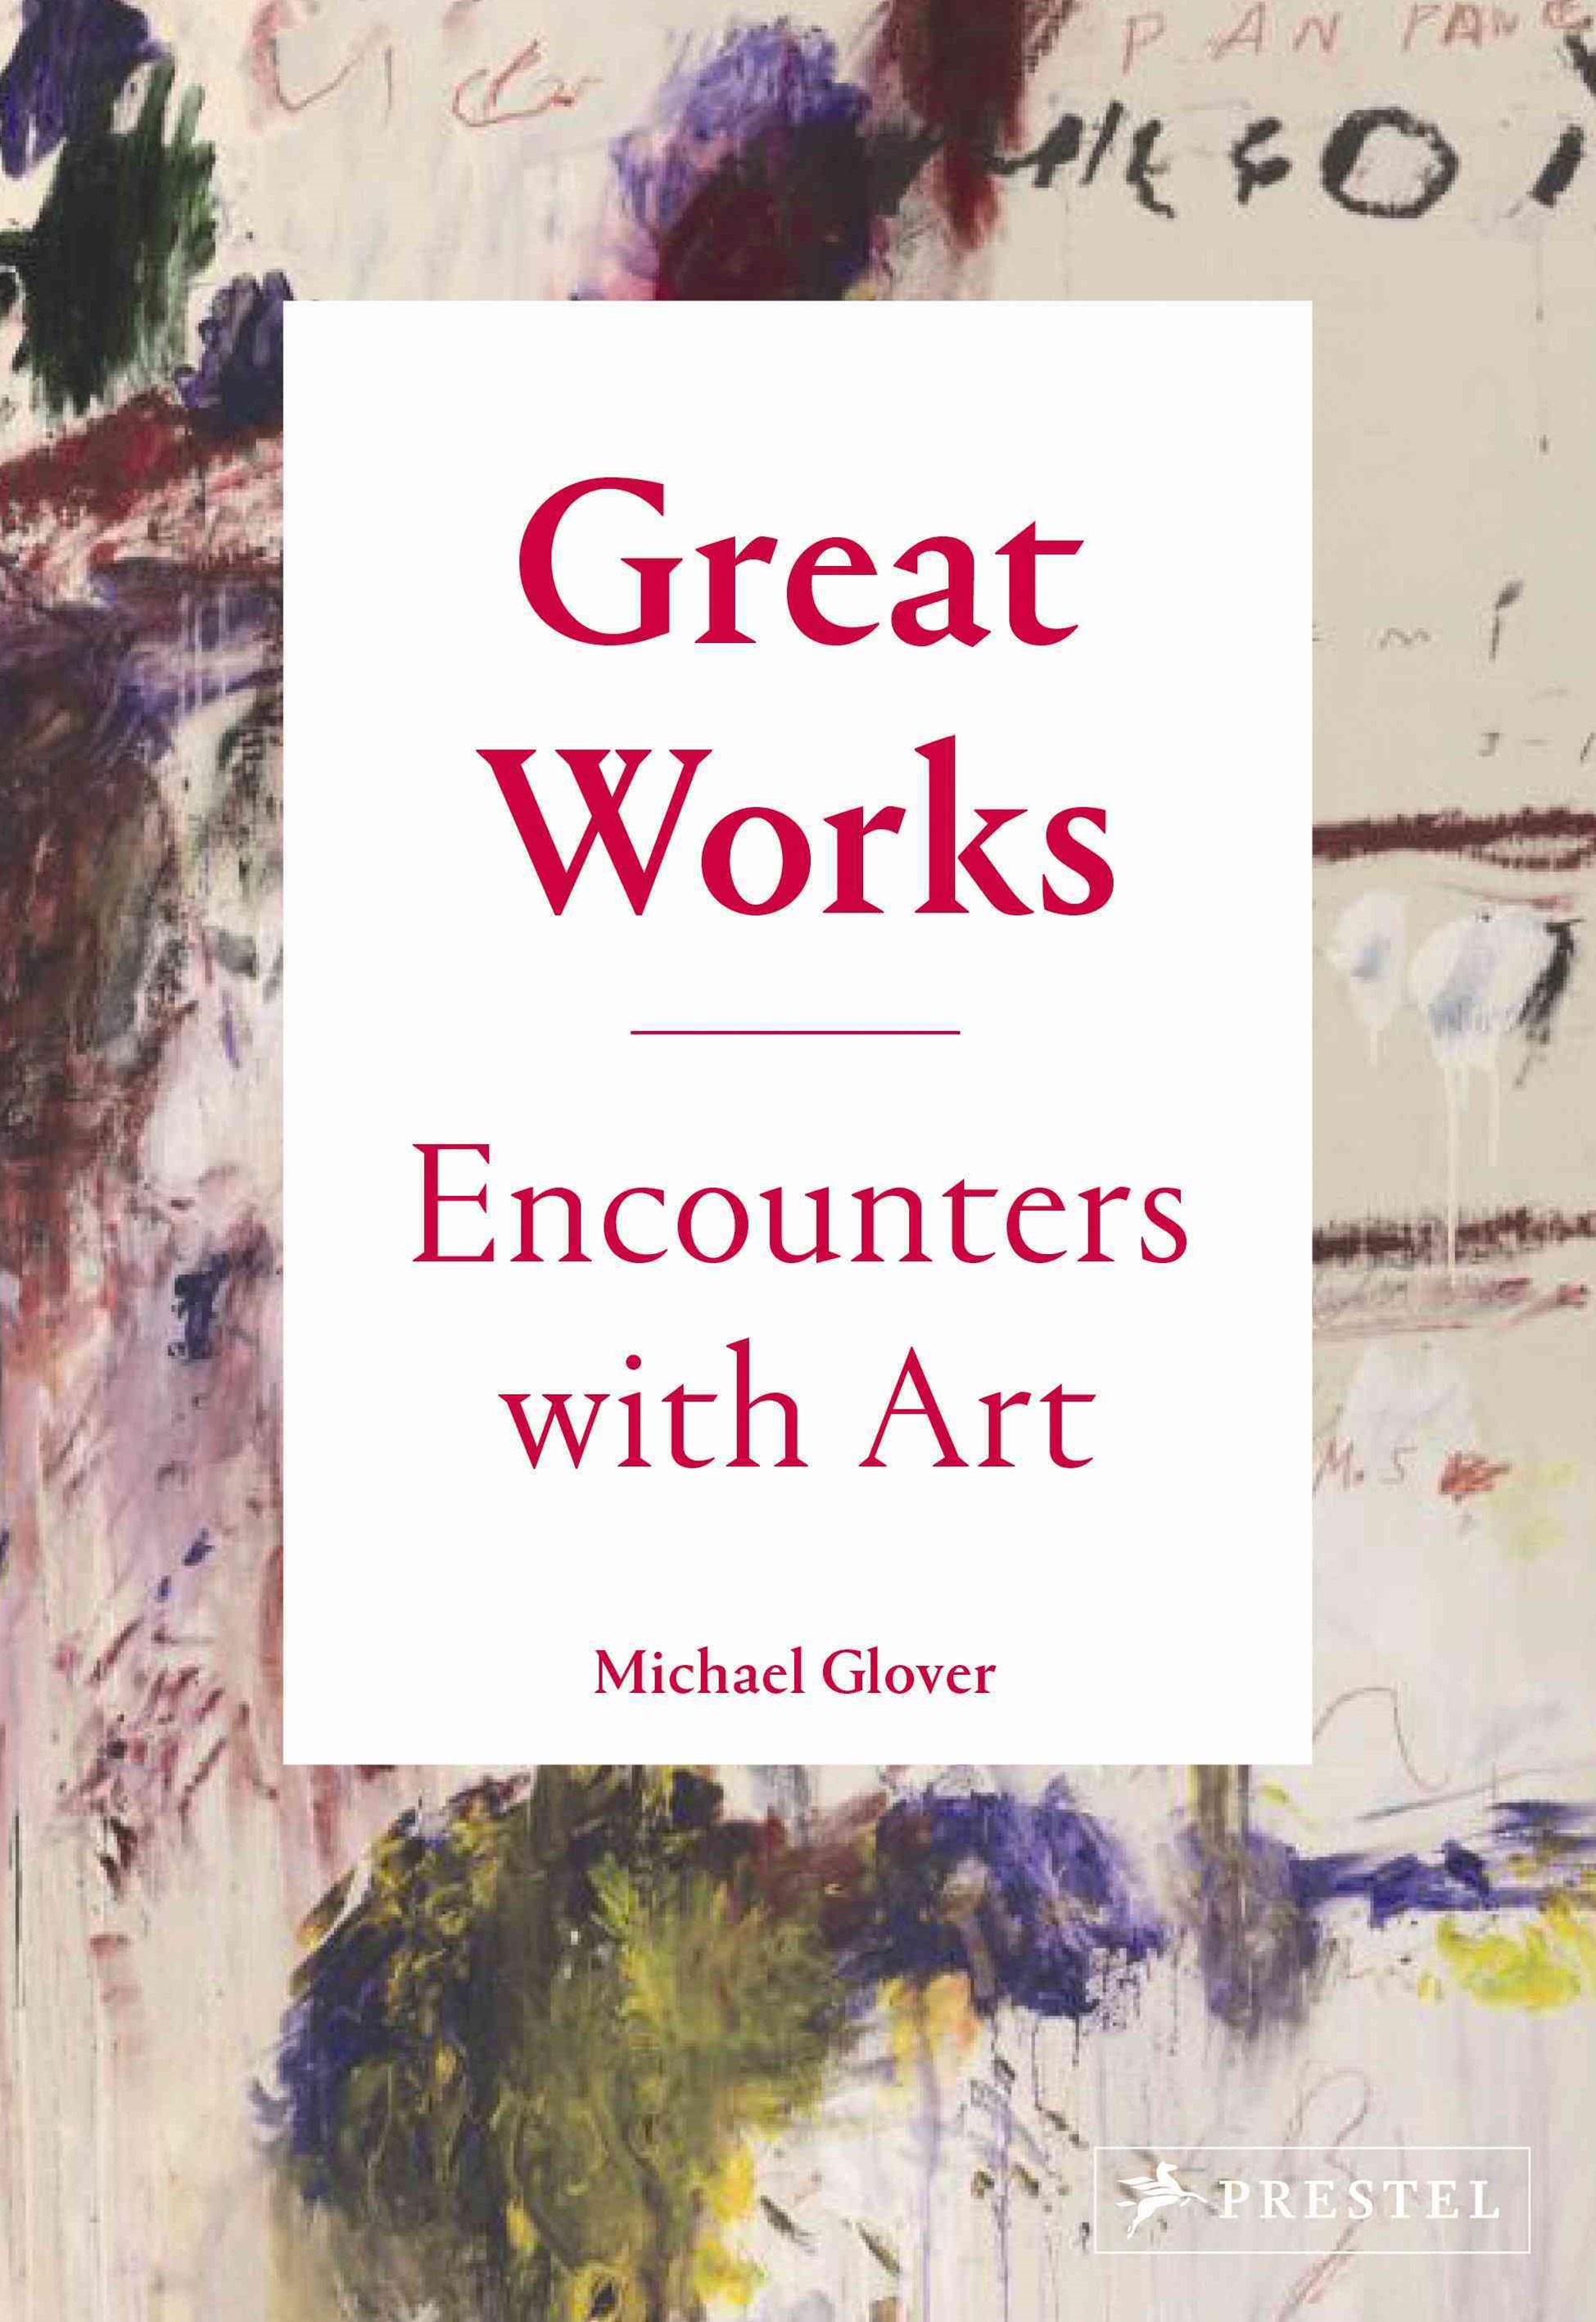 Great Works: Encounters with Art